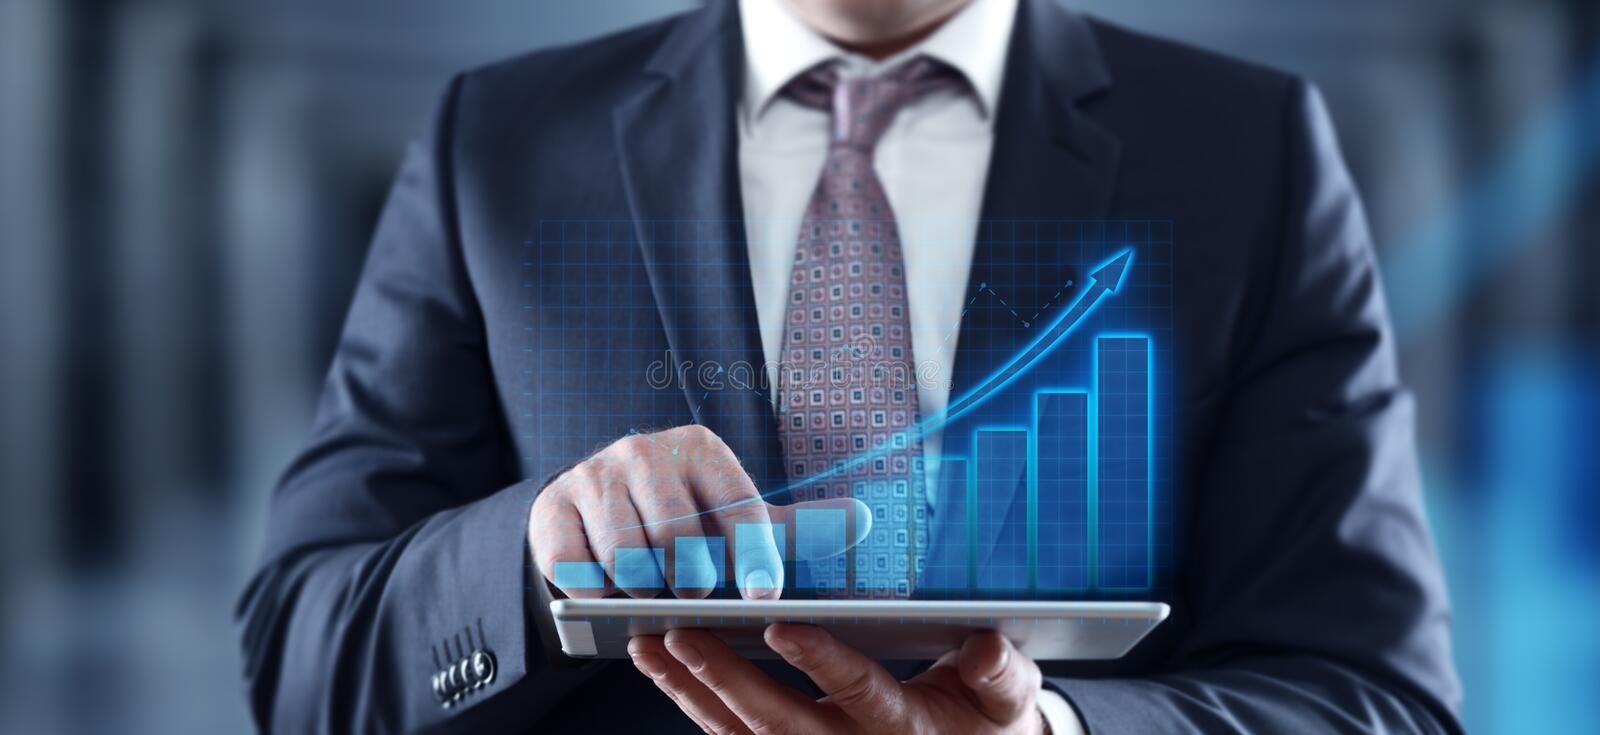 Financial Graph. Stock Market chart. Forex Investment Business Internet Technology concept royalty free stock photography